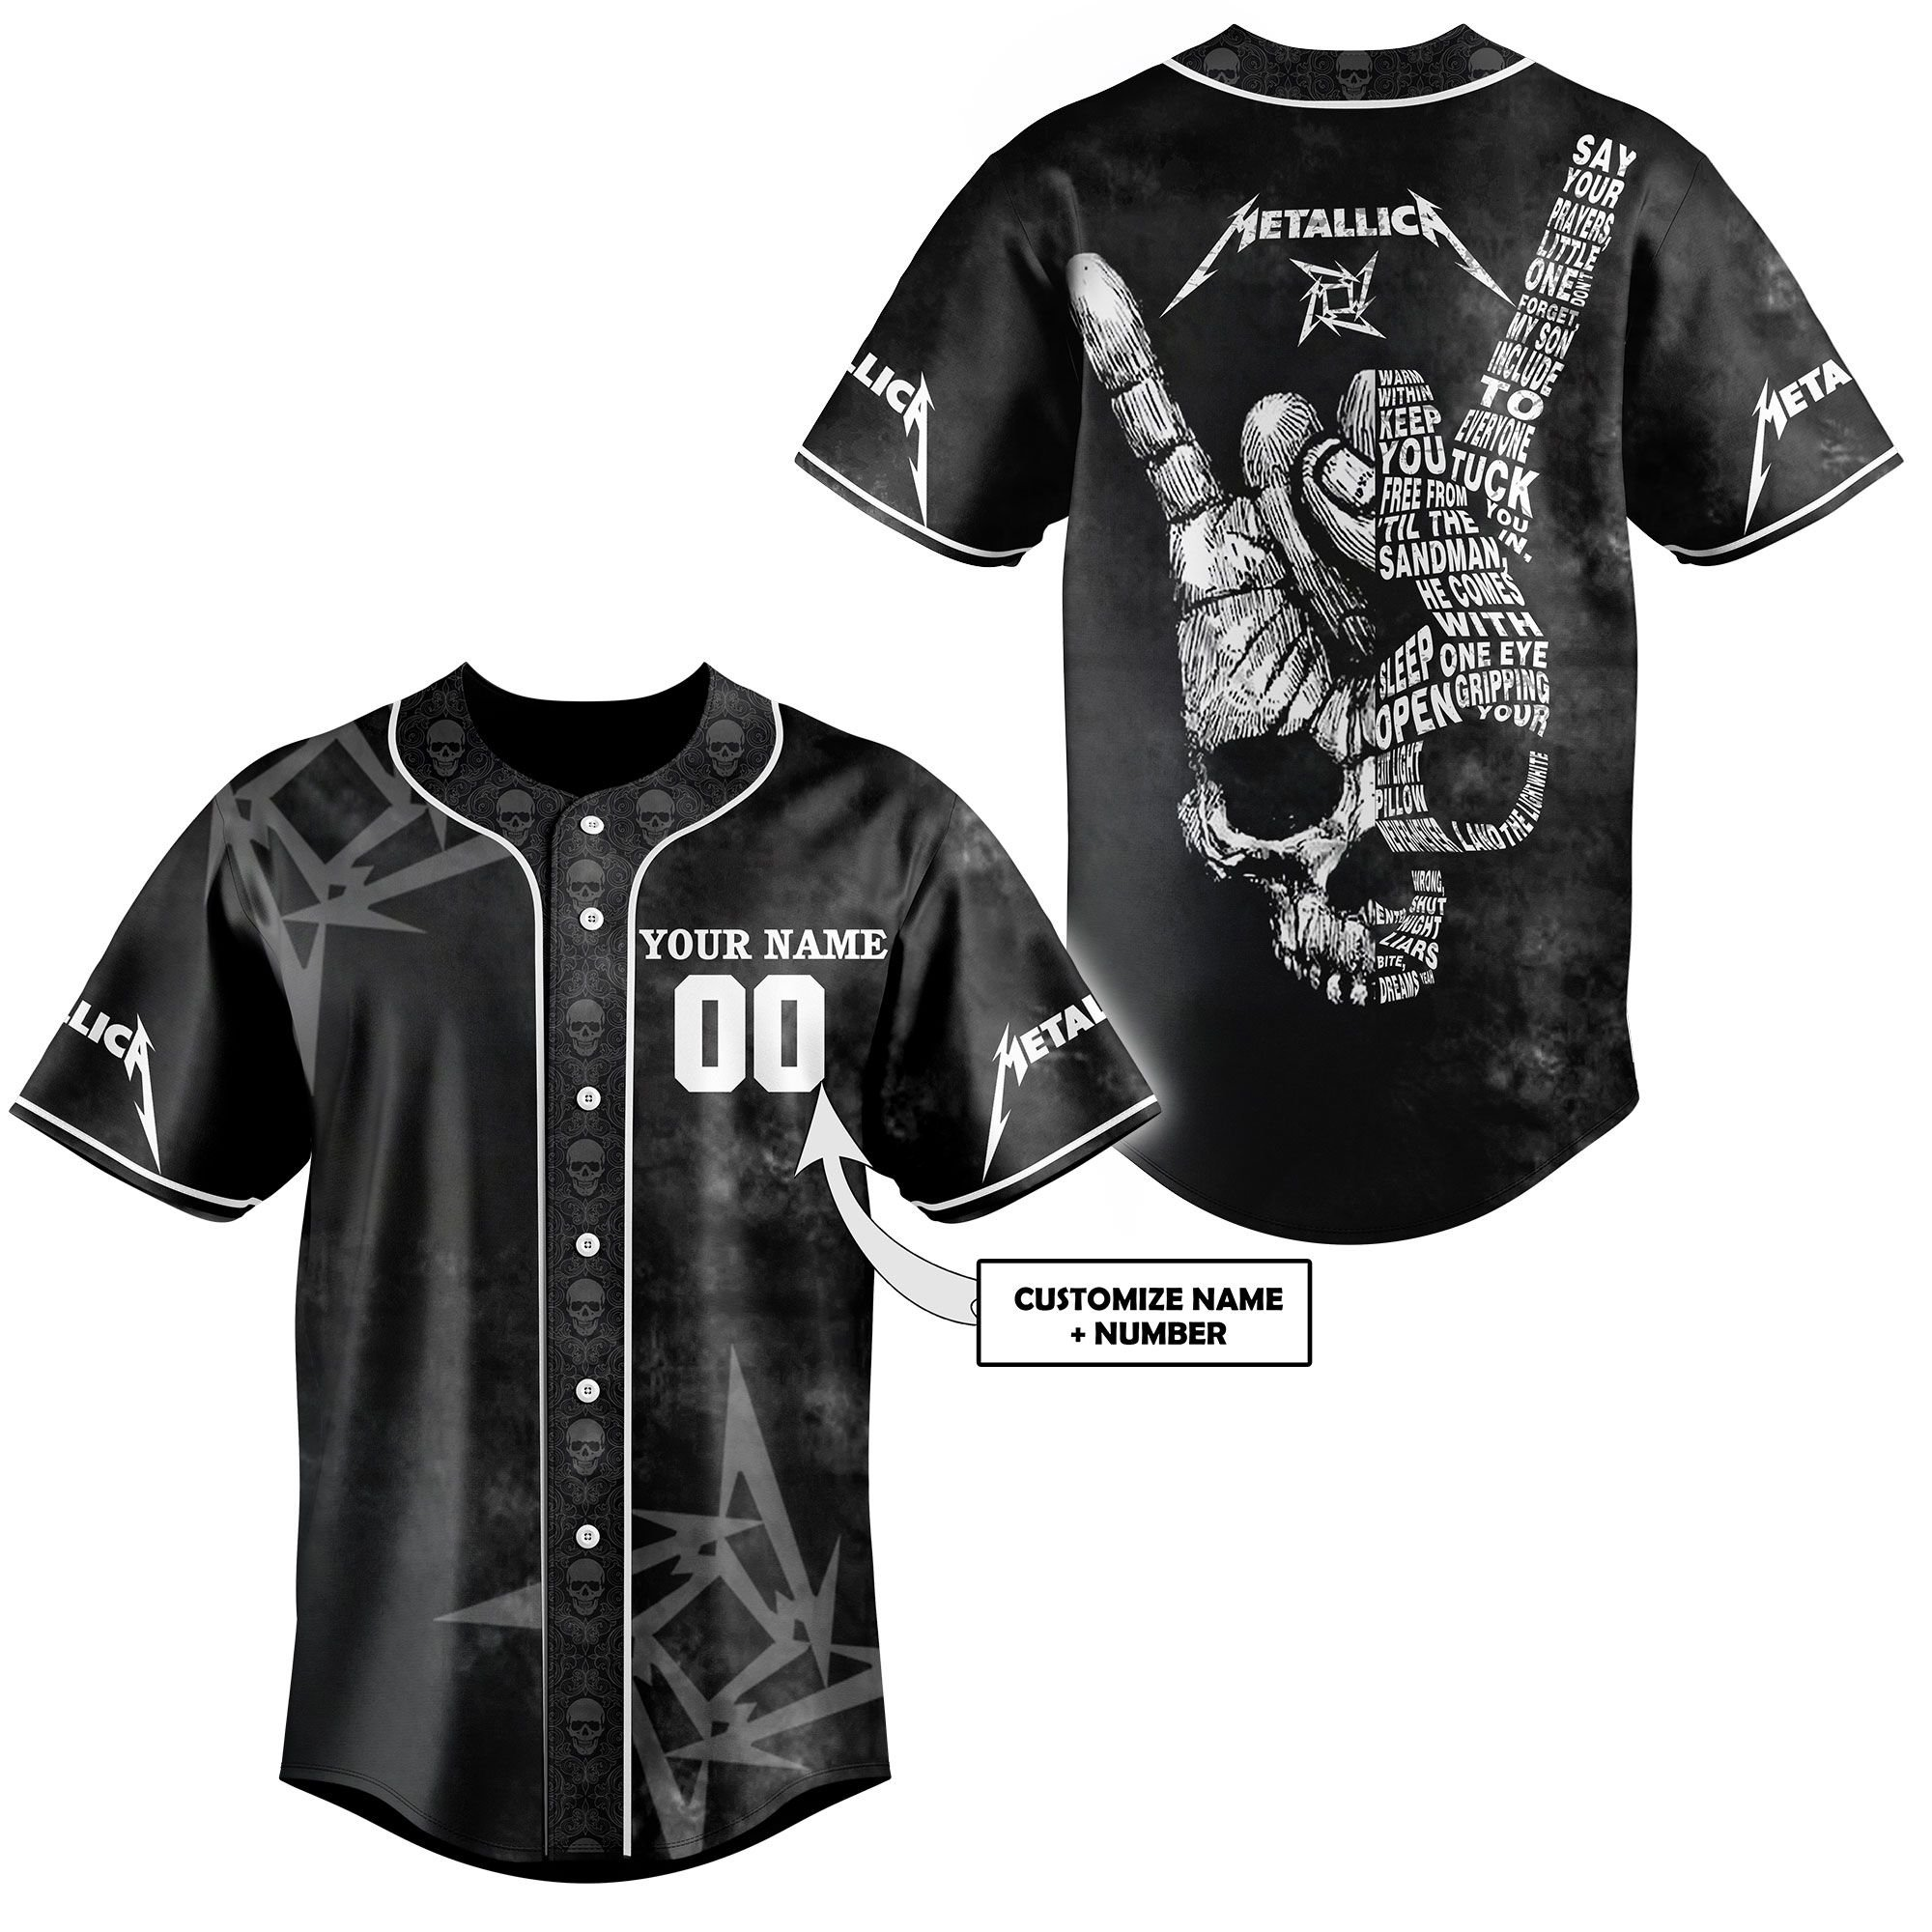 Metalica skull custom name and number baseball jersey - LIMITED EDITION